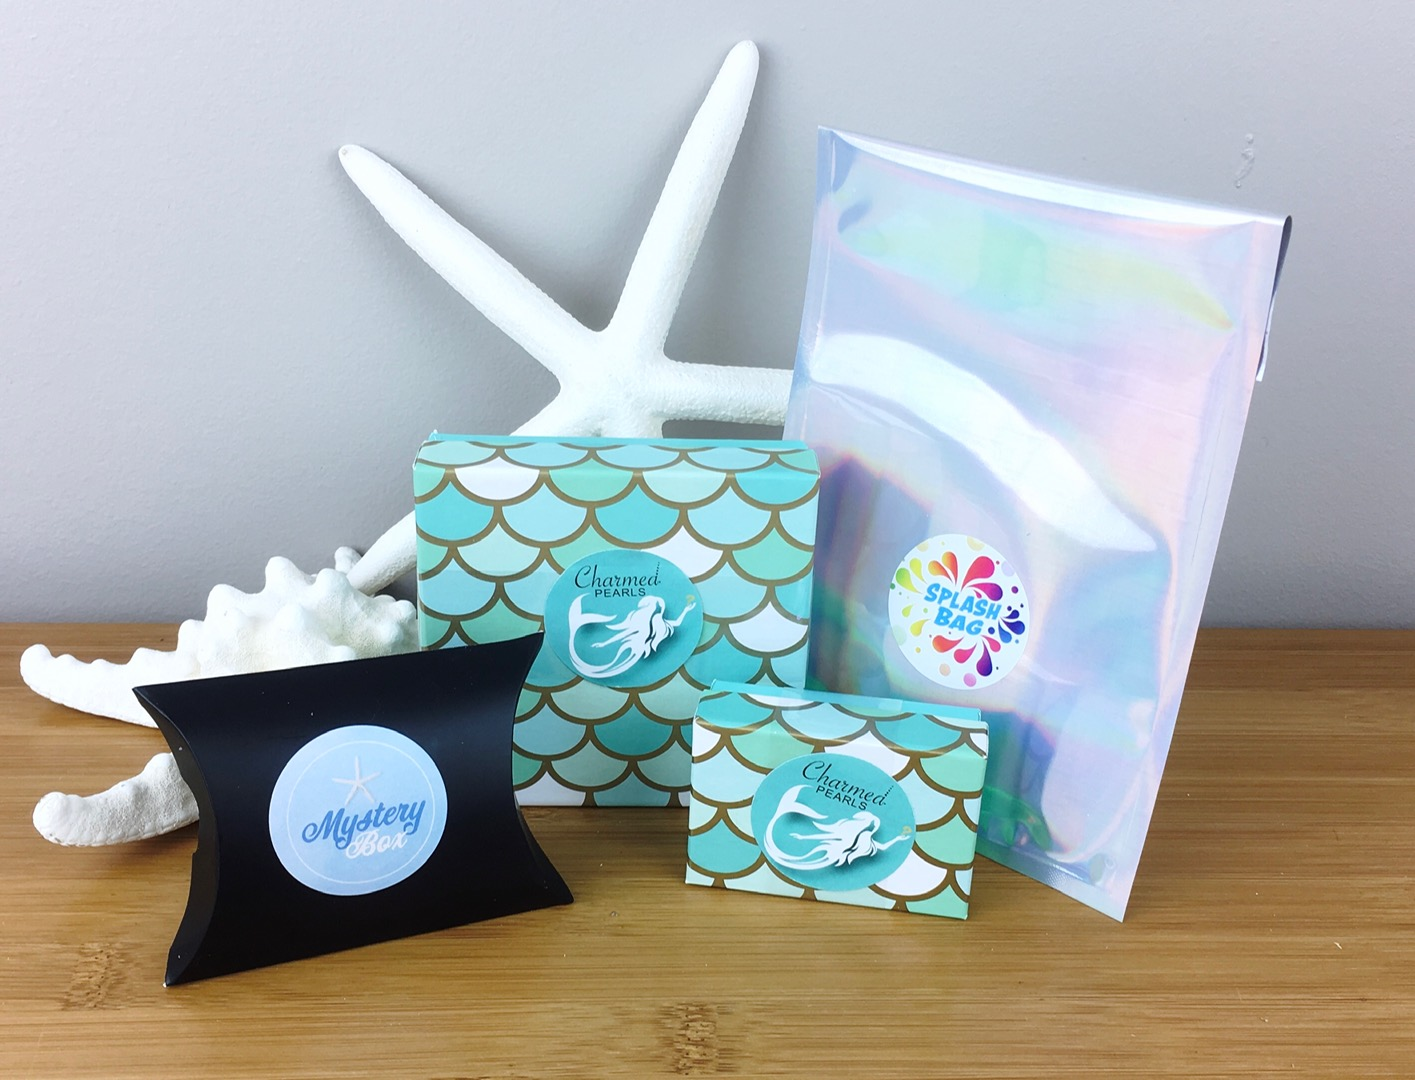 Mystery Party Boxes - Try Something Fun! Open one of our Mystery Boxes at your next party!